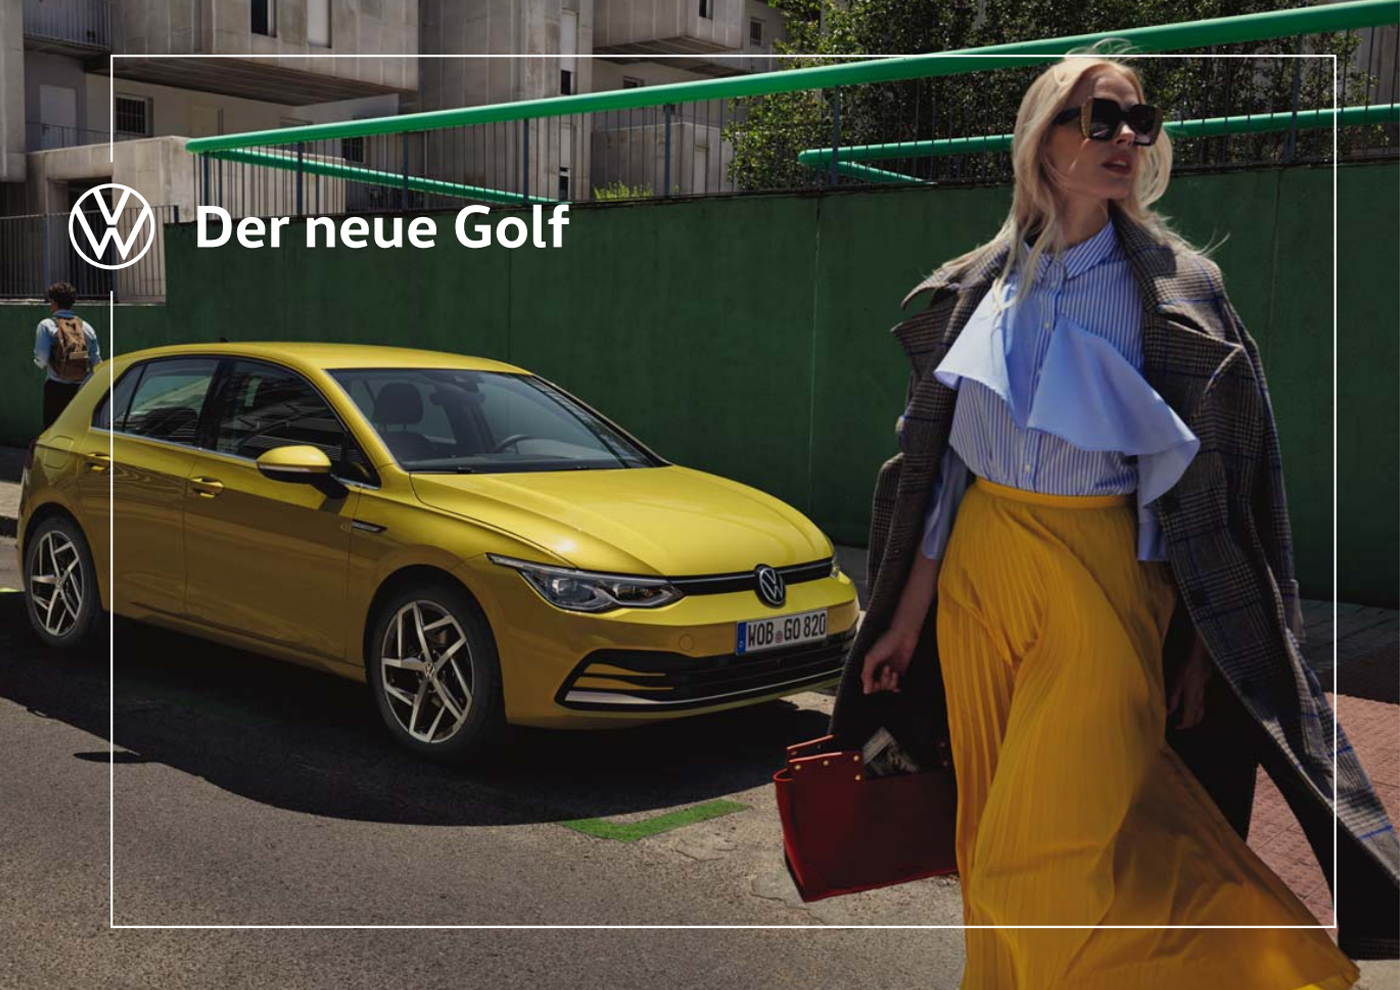 [DE]_VW_Golf_8_brochure_2019.jpg